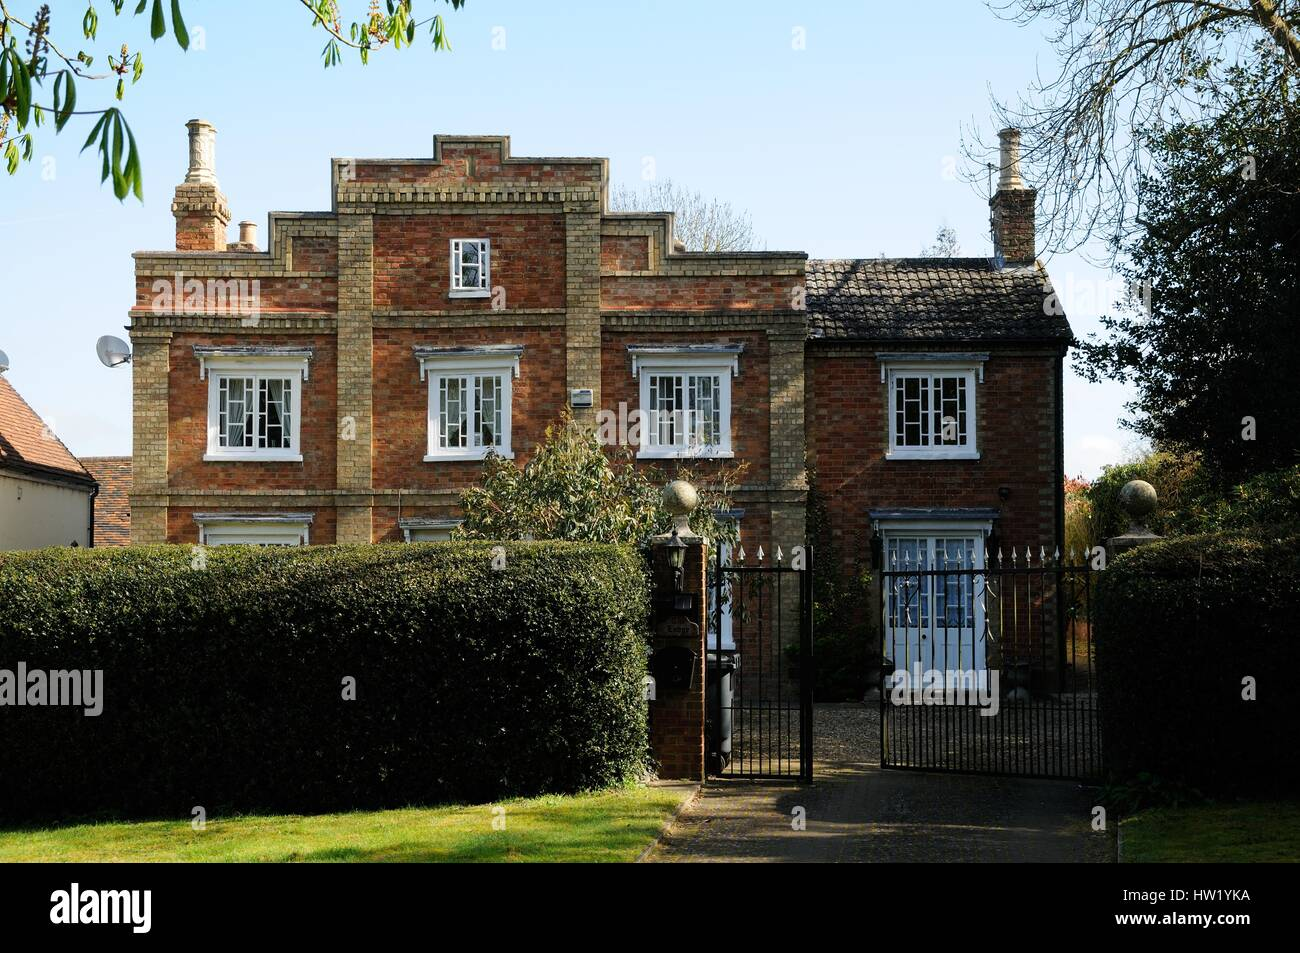 The Lodge, Husborne Crawley, Bedfordshire, is a brick building, with finely proportioned windows, a parapet roof, - Stock Image